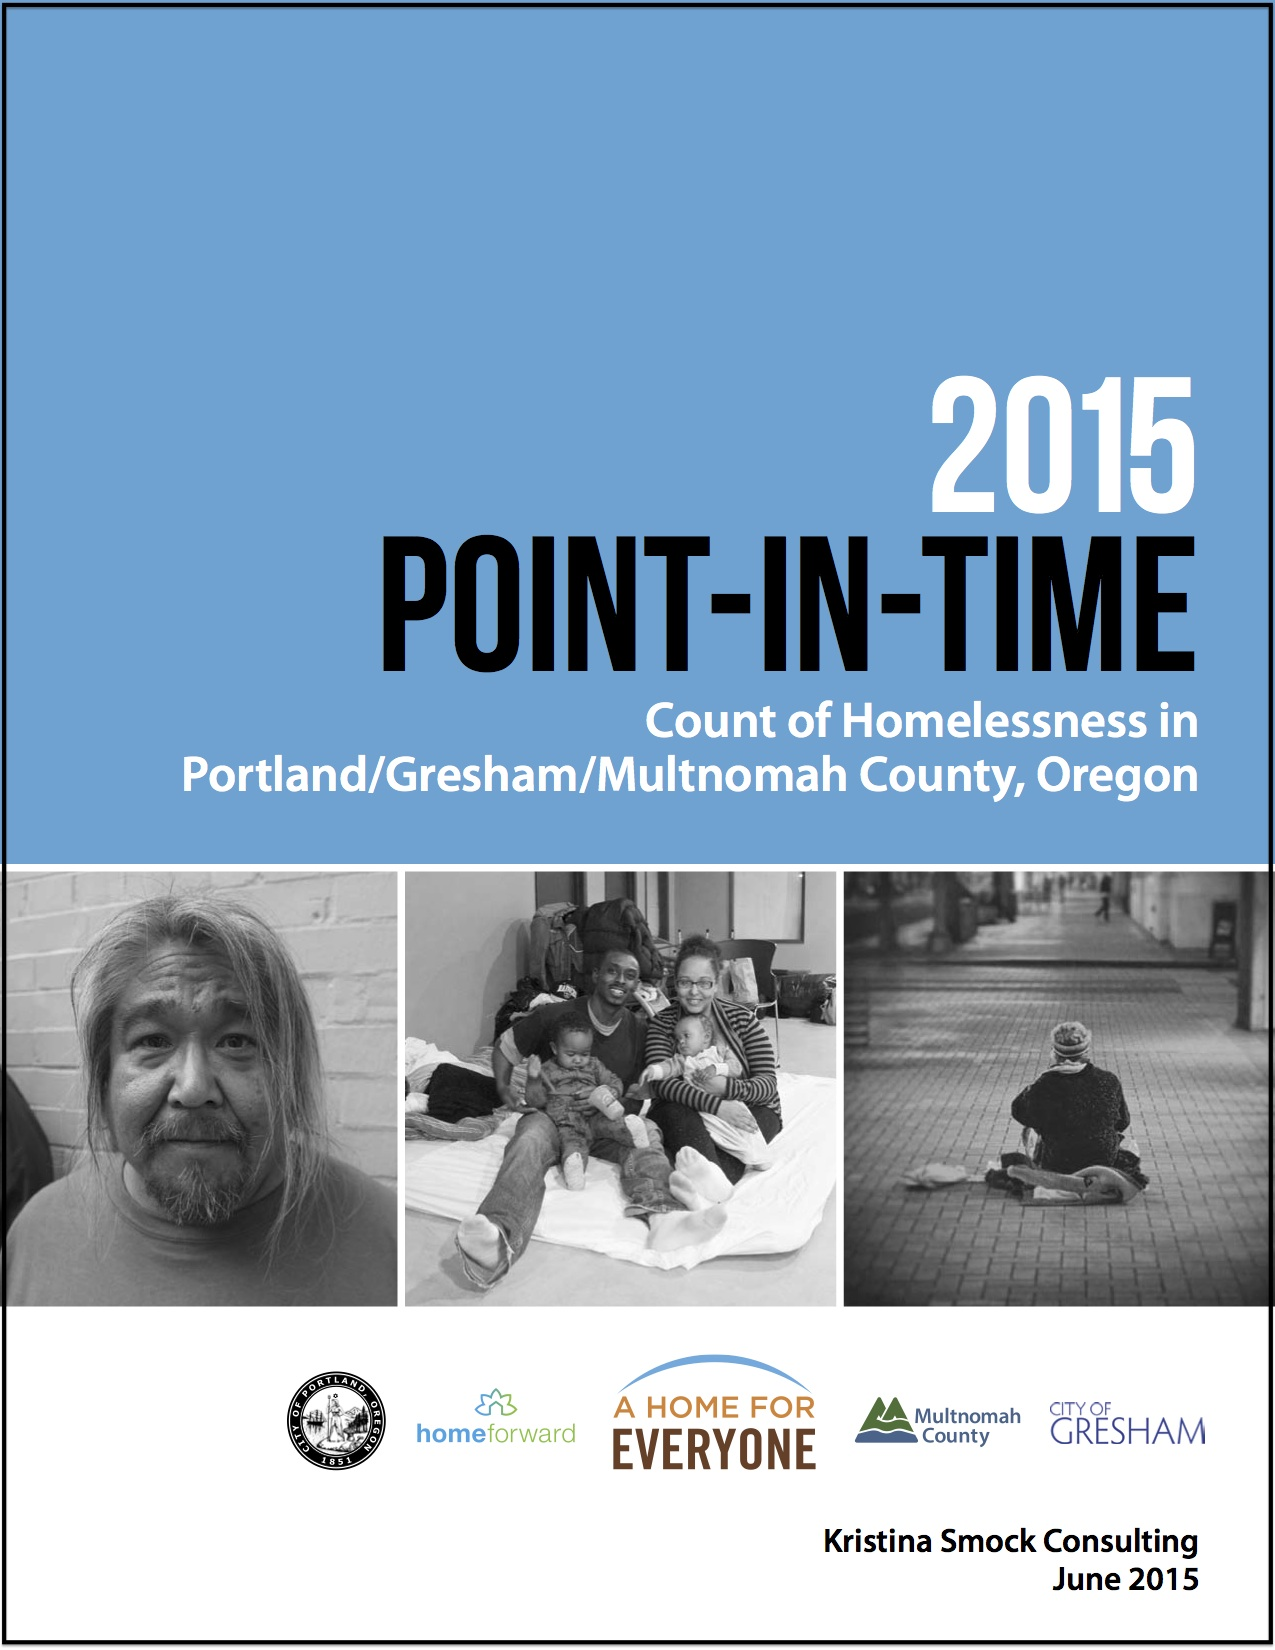 2015 Point in Time Count of Homelessness in Multnomah County.jpg